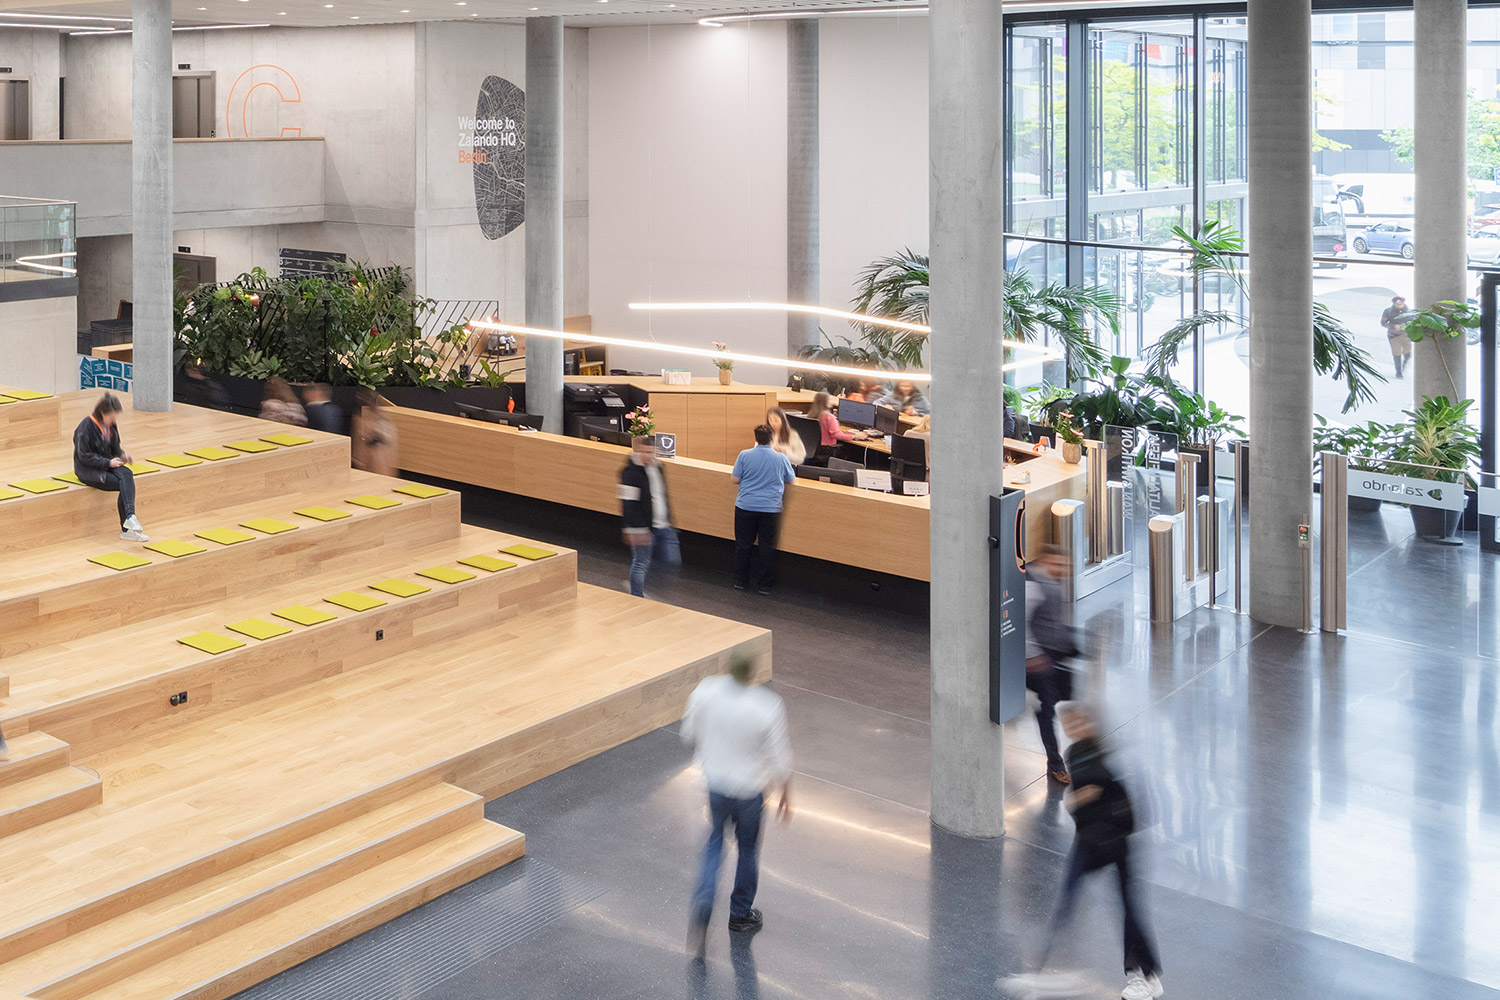 Busy Zalando employees walking through the spacious foyer of the new headquarters